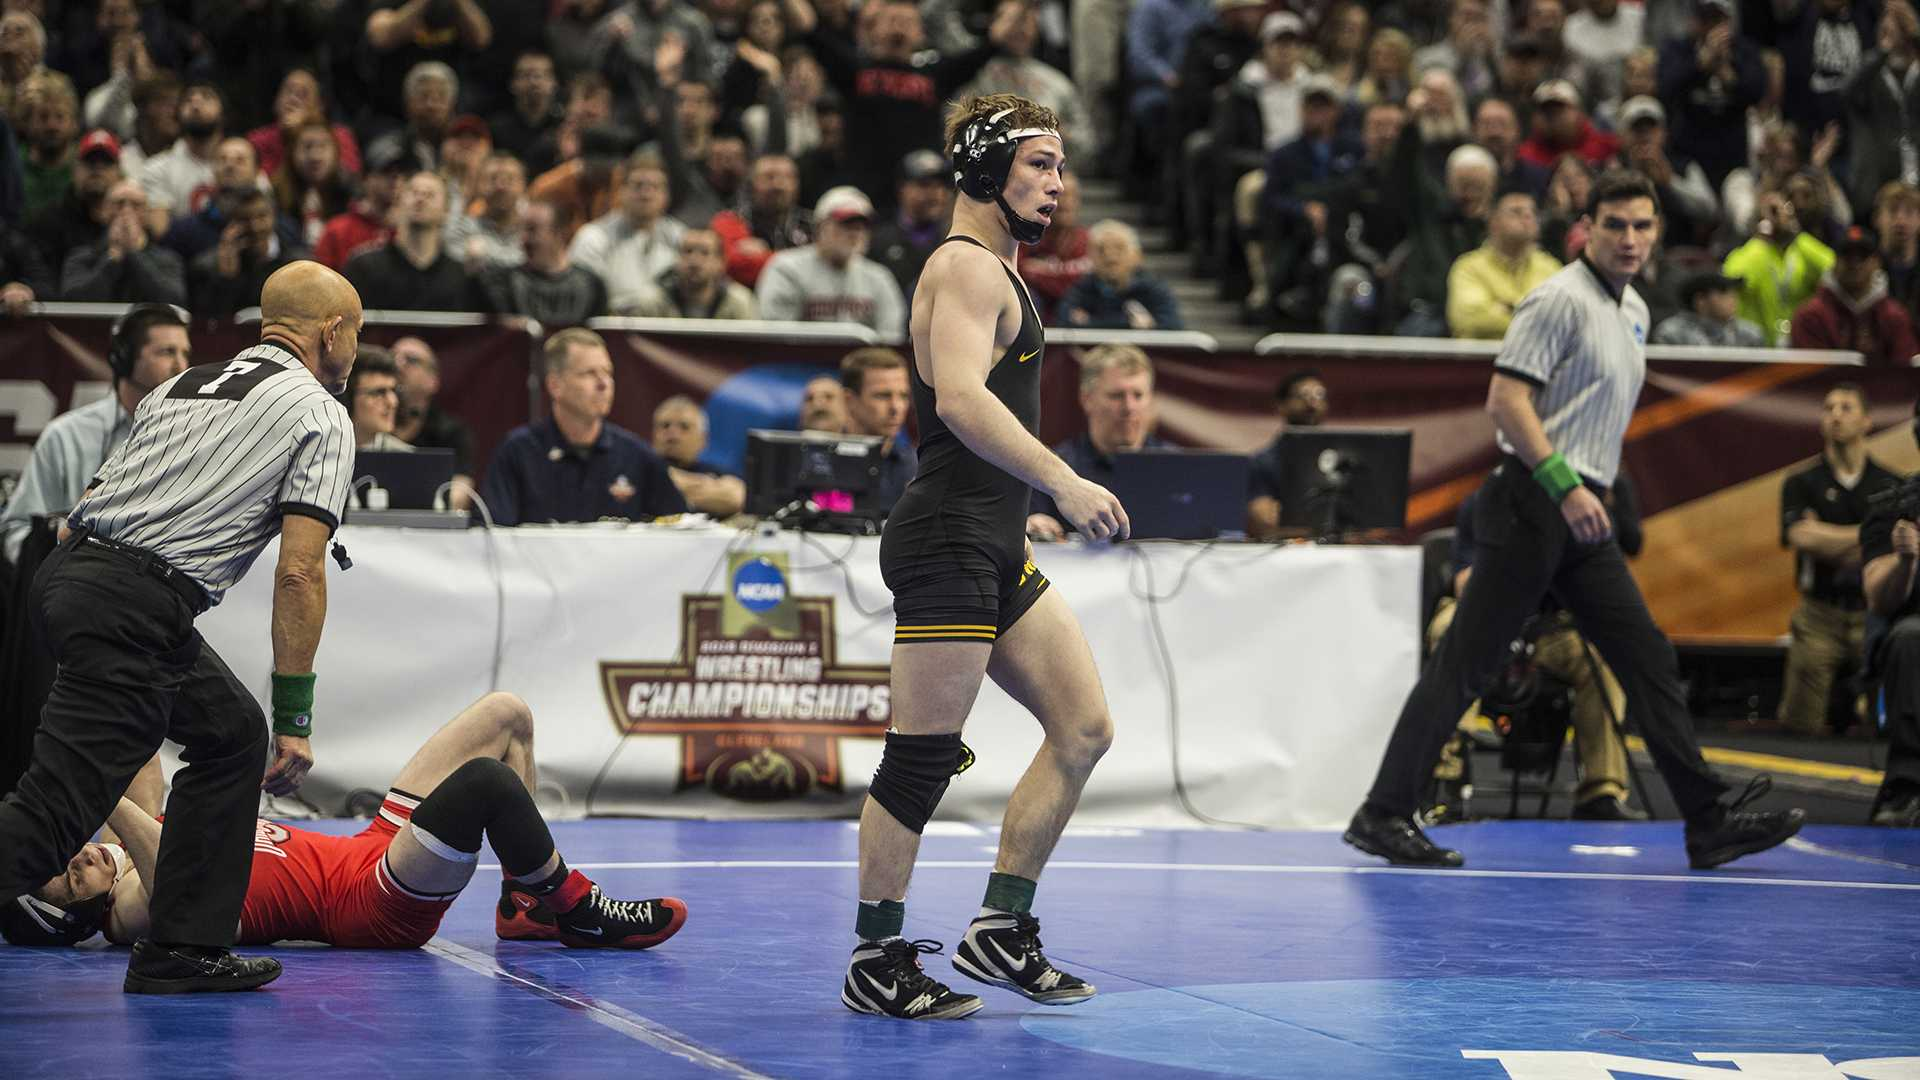 Photos: NCAA Wrestling Championships Session 4